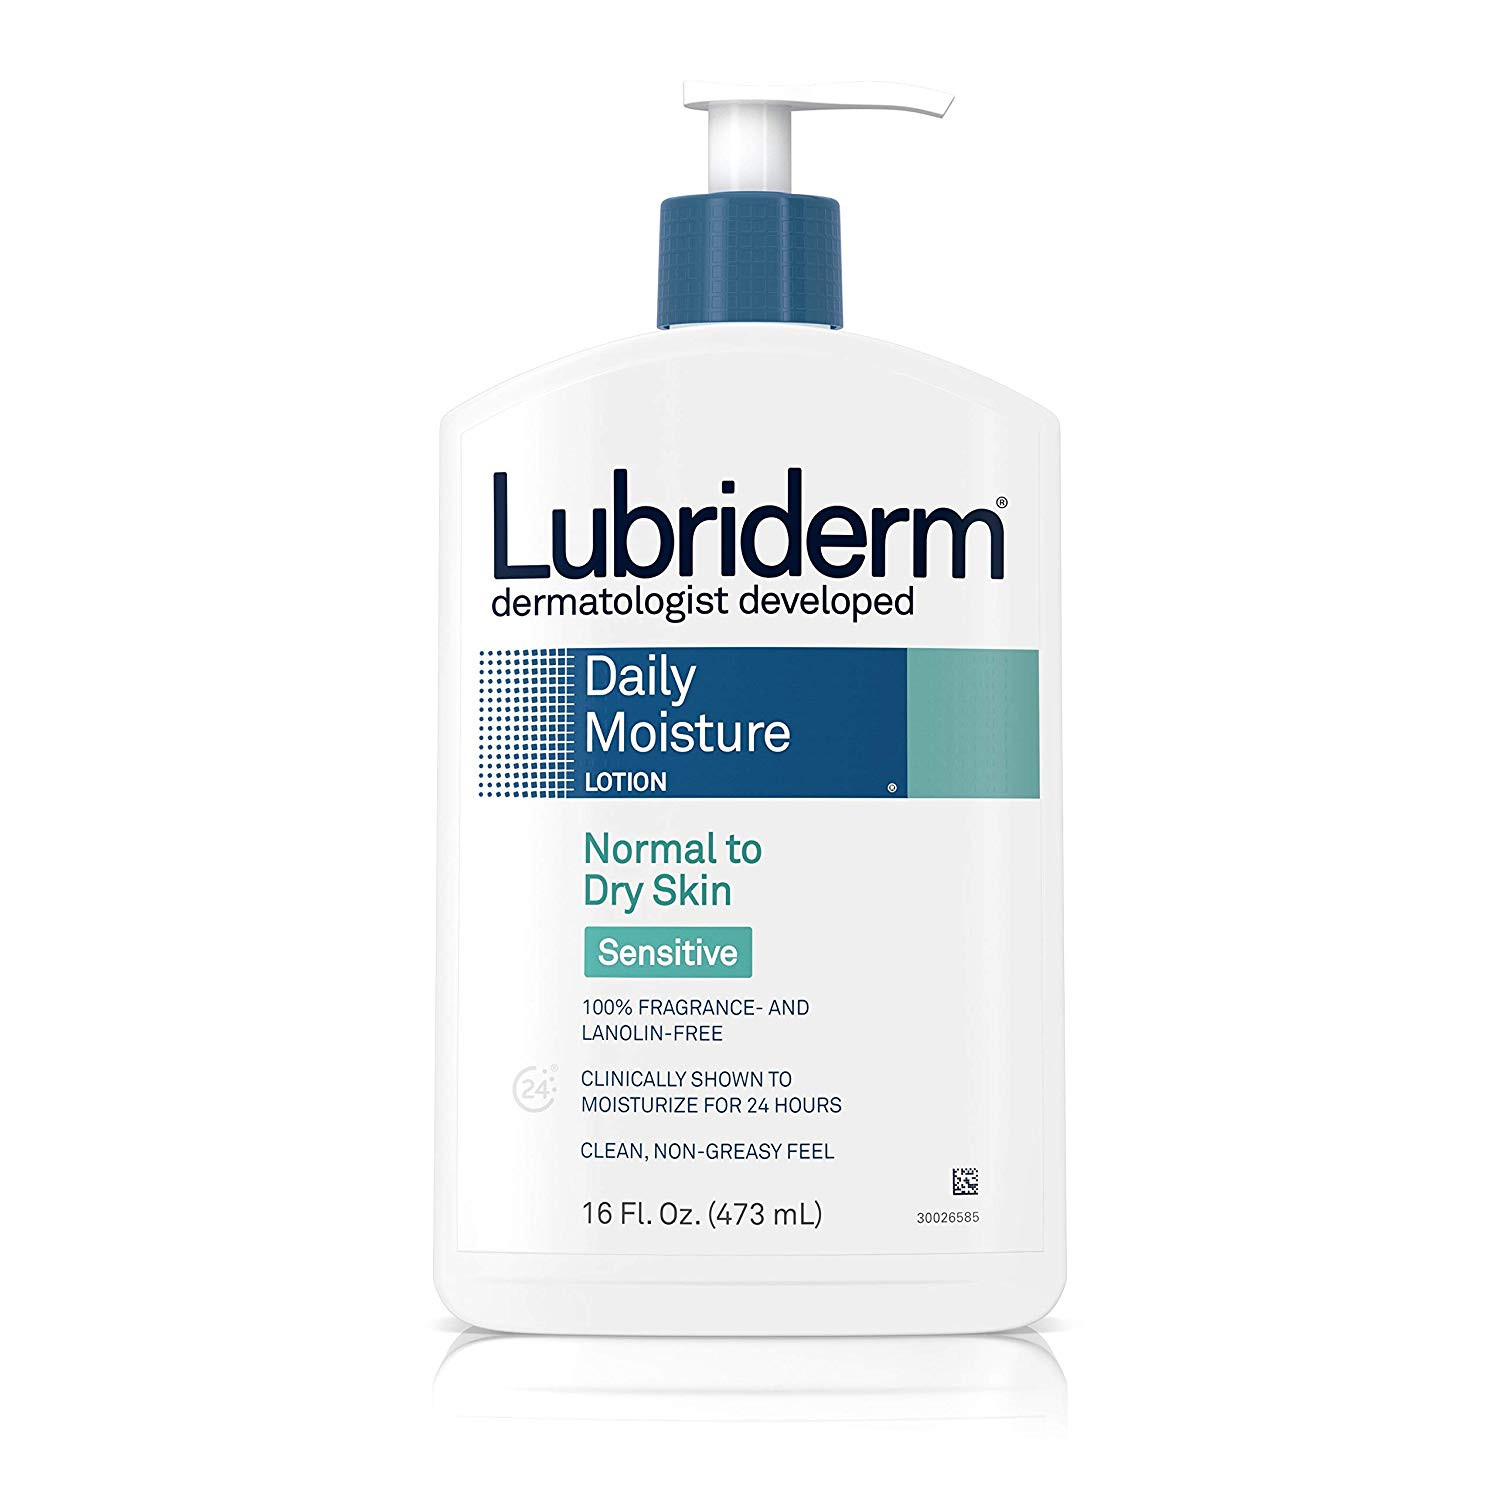 Lubriderm Daily Moisture Lotion Sensitive Normal to Dry Skin,16 fl oz.(473ml)